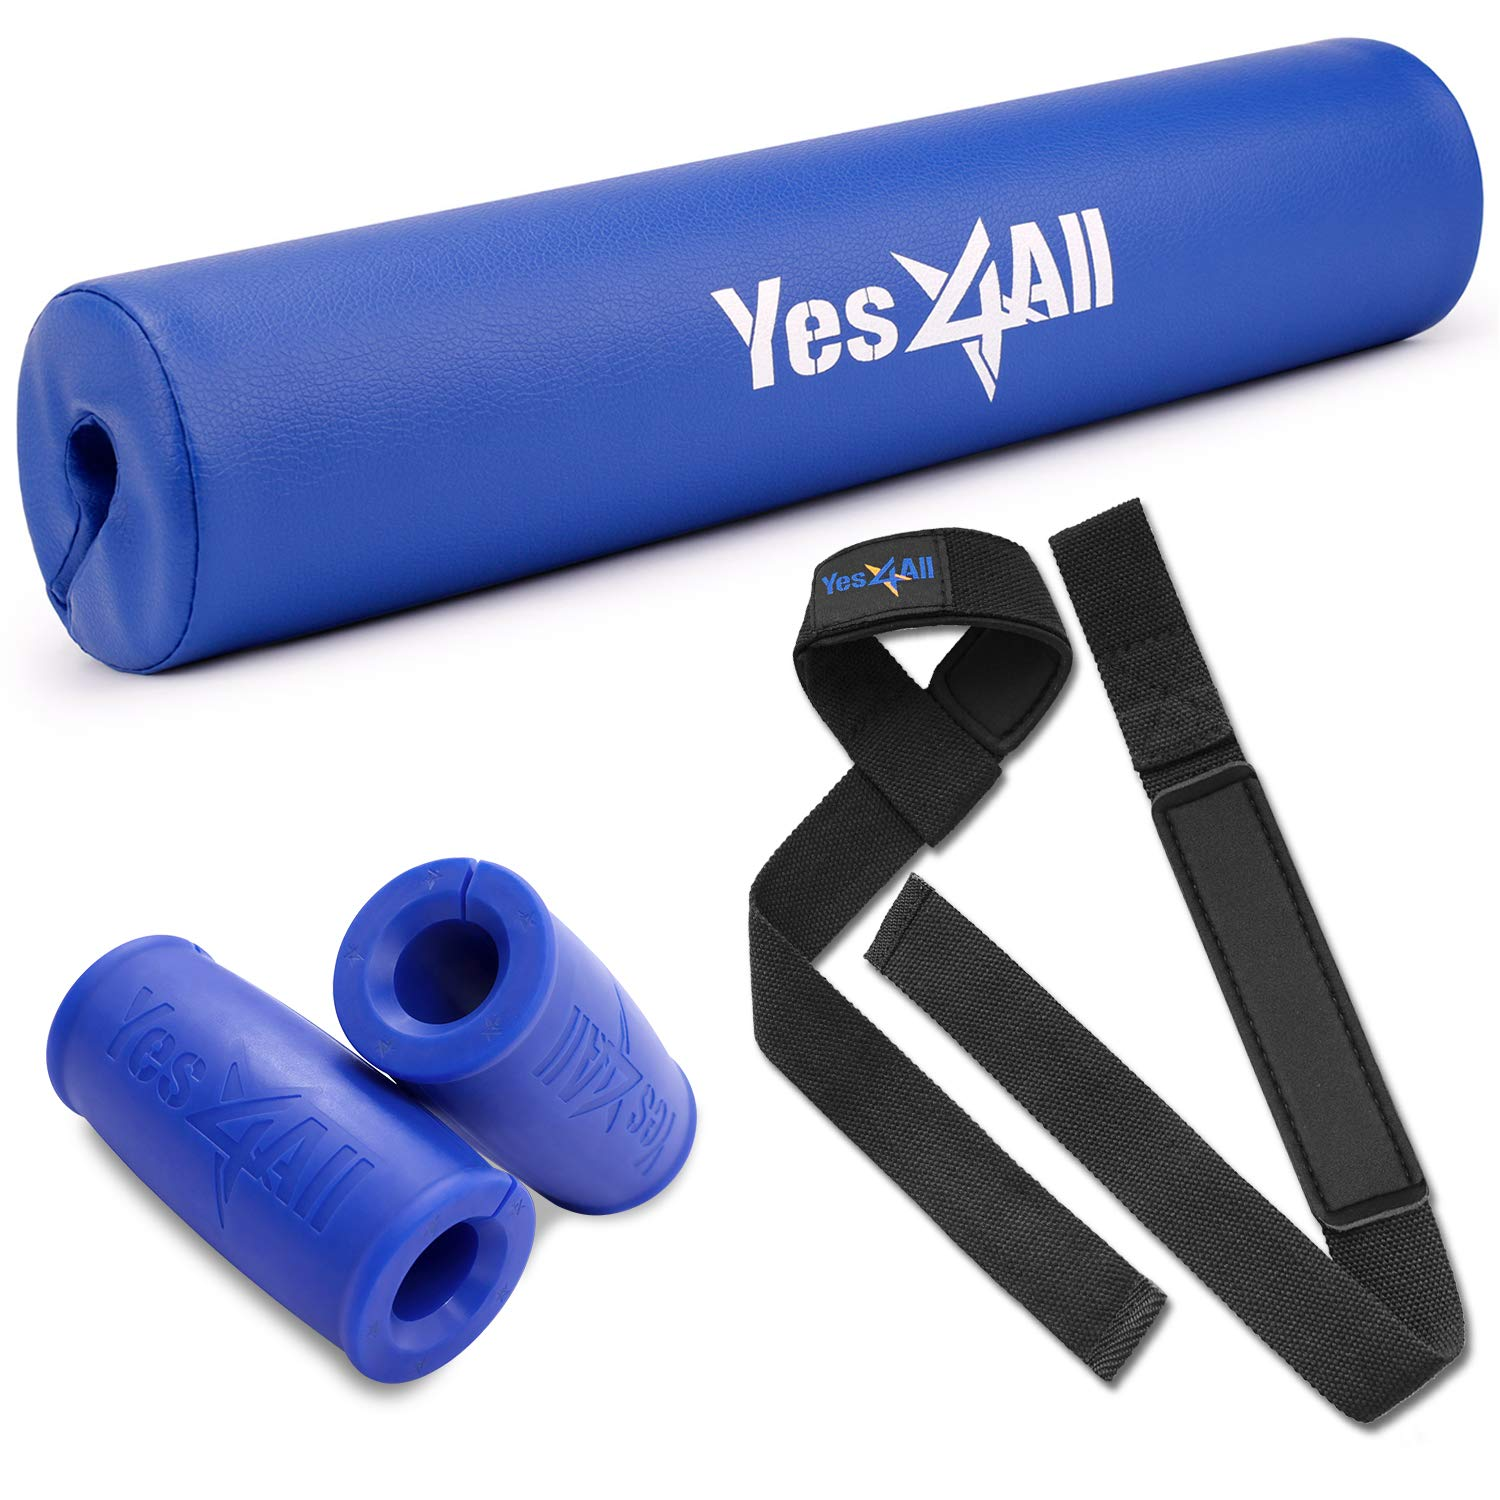 Yes4All Essential Gym Set - Including Barbell Grips, PVC Barbell Pad and Lifting Wrist Straps (Blue)